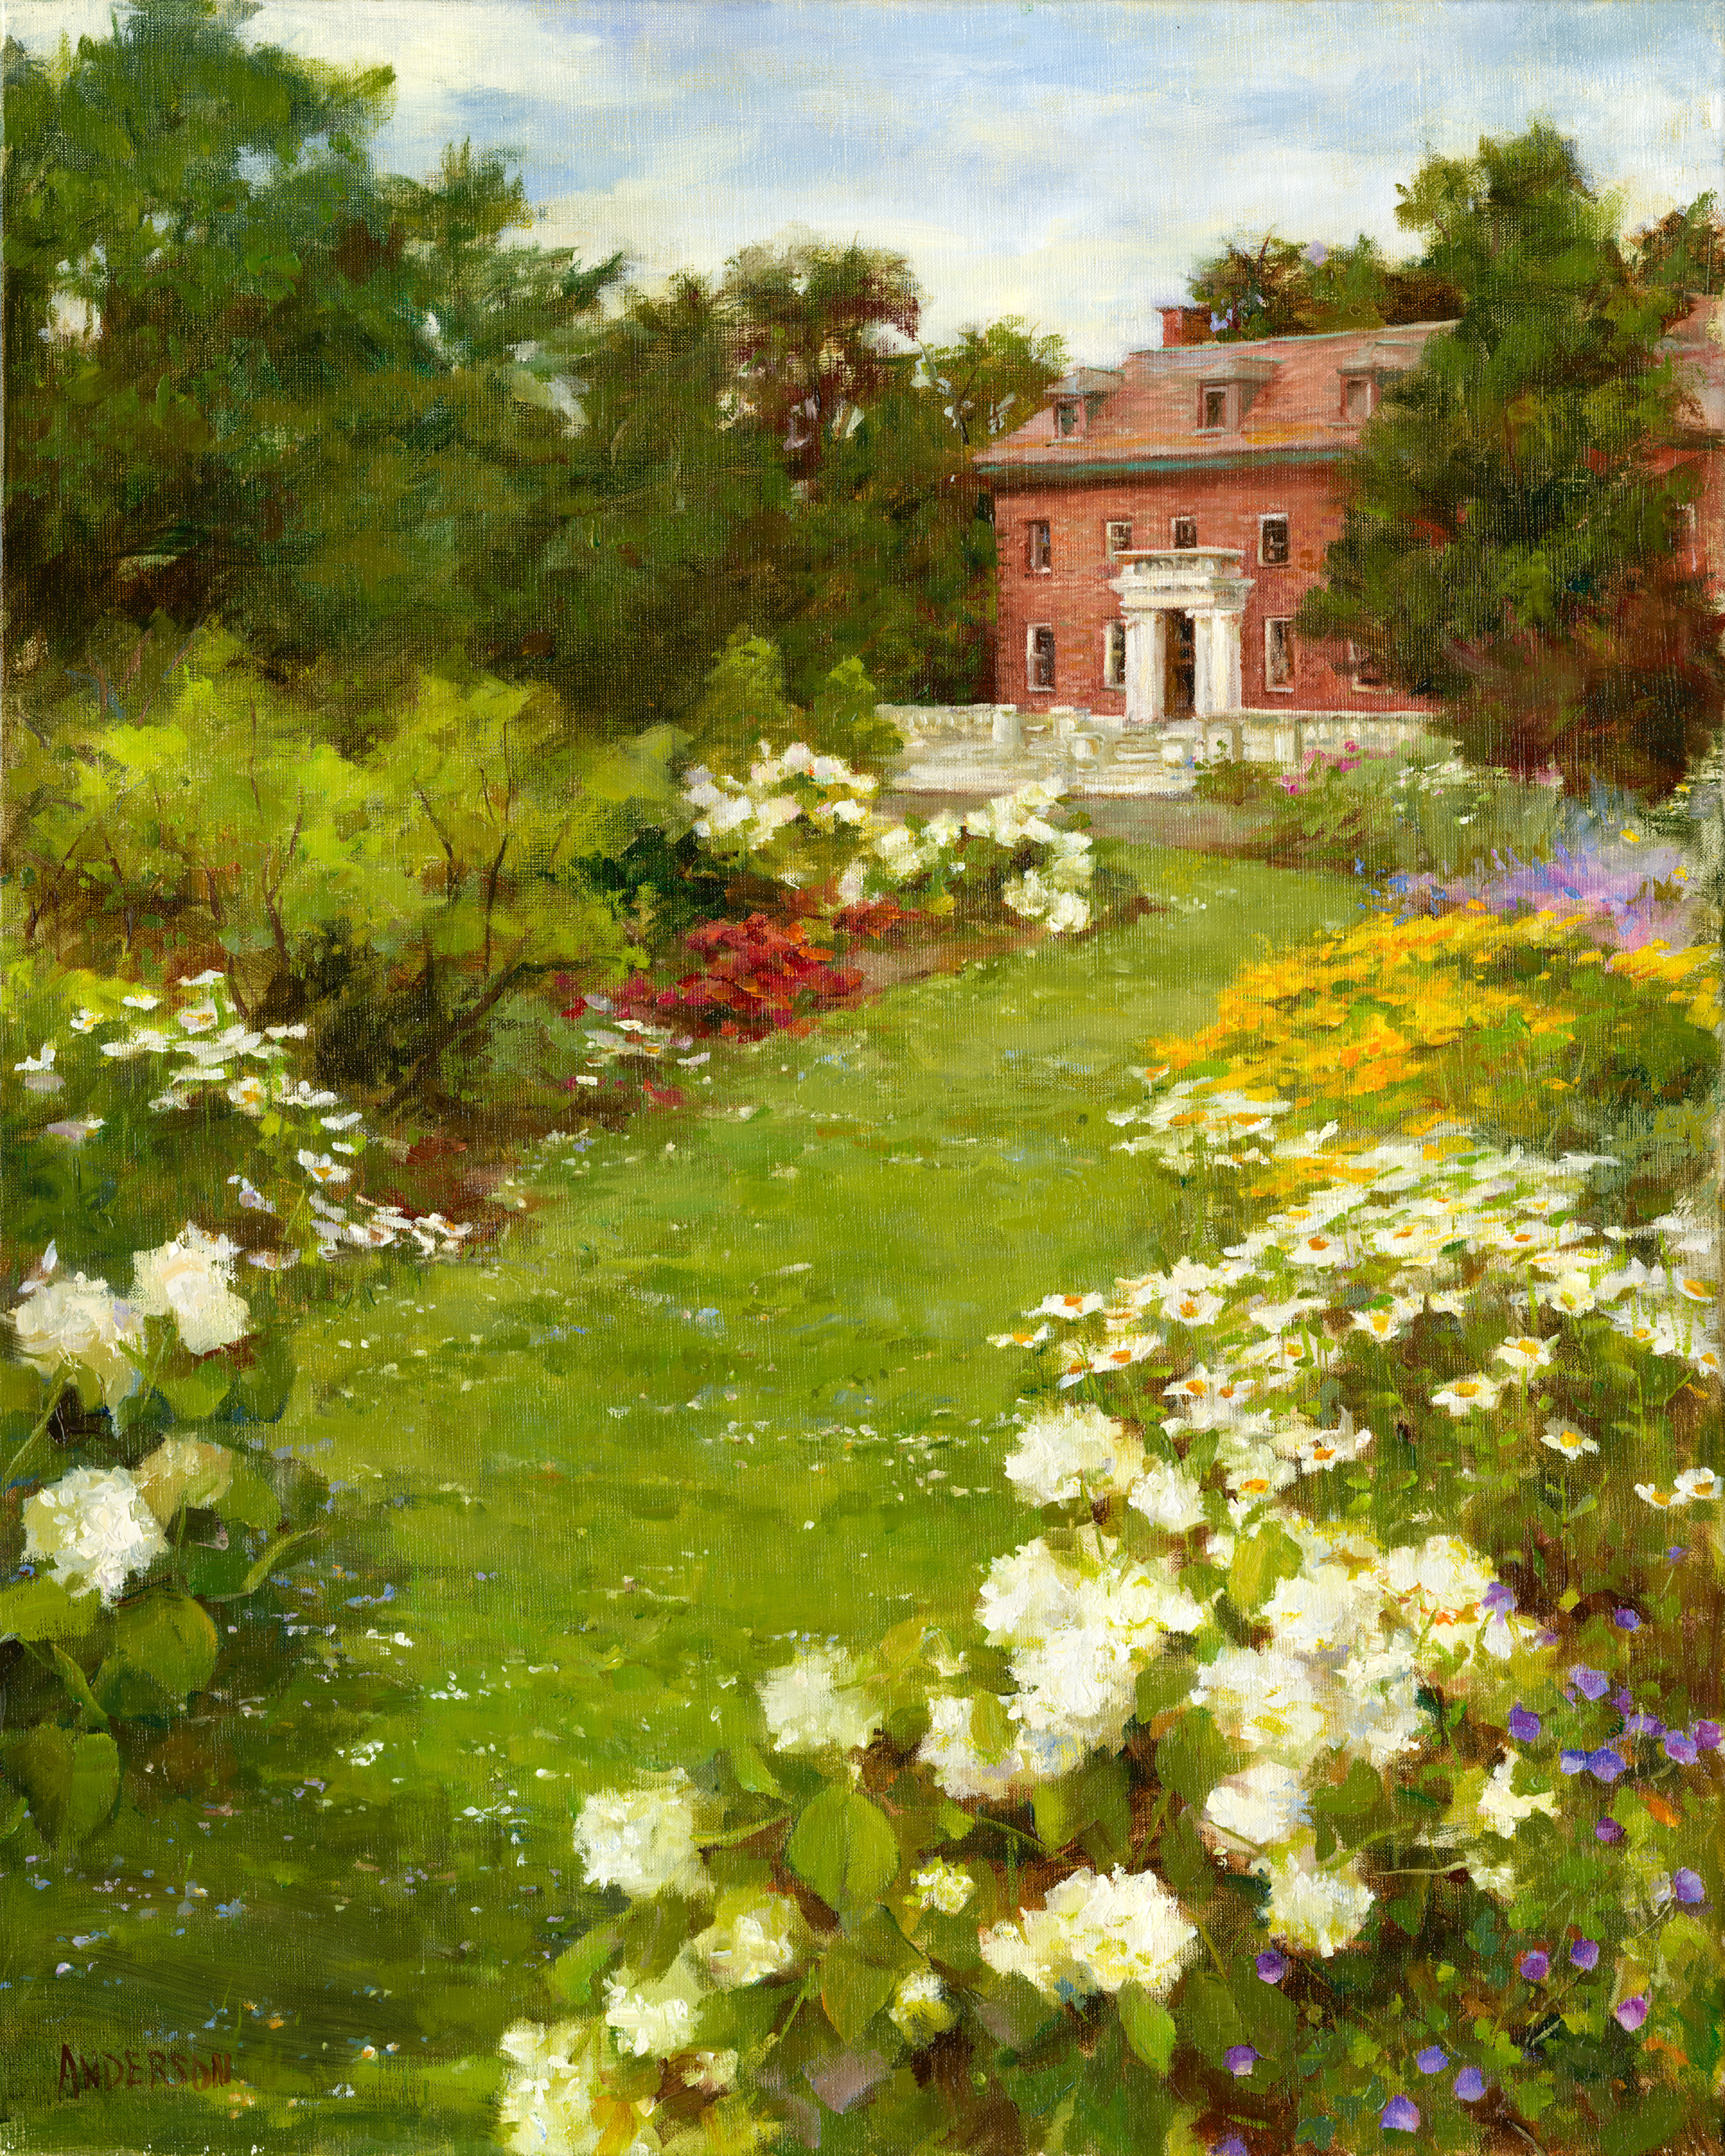 """""""The Manor House and Garden"""" - SOLD  16x20 oil ©Kathy Anderson 2014 The painting will be featured by Elm Bank during a Fundraising event in October 2014."""